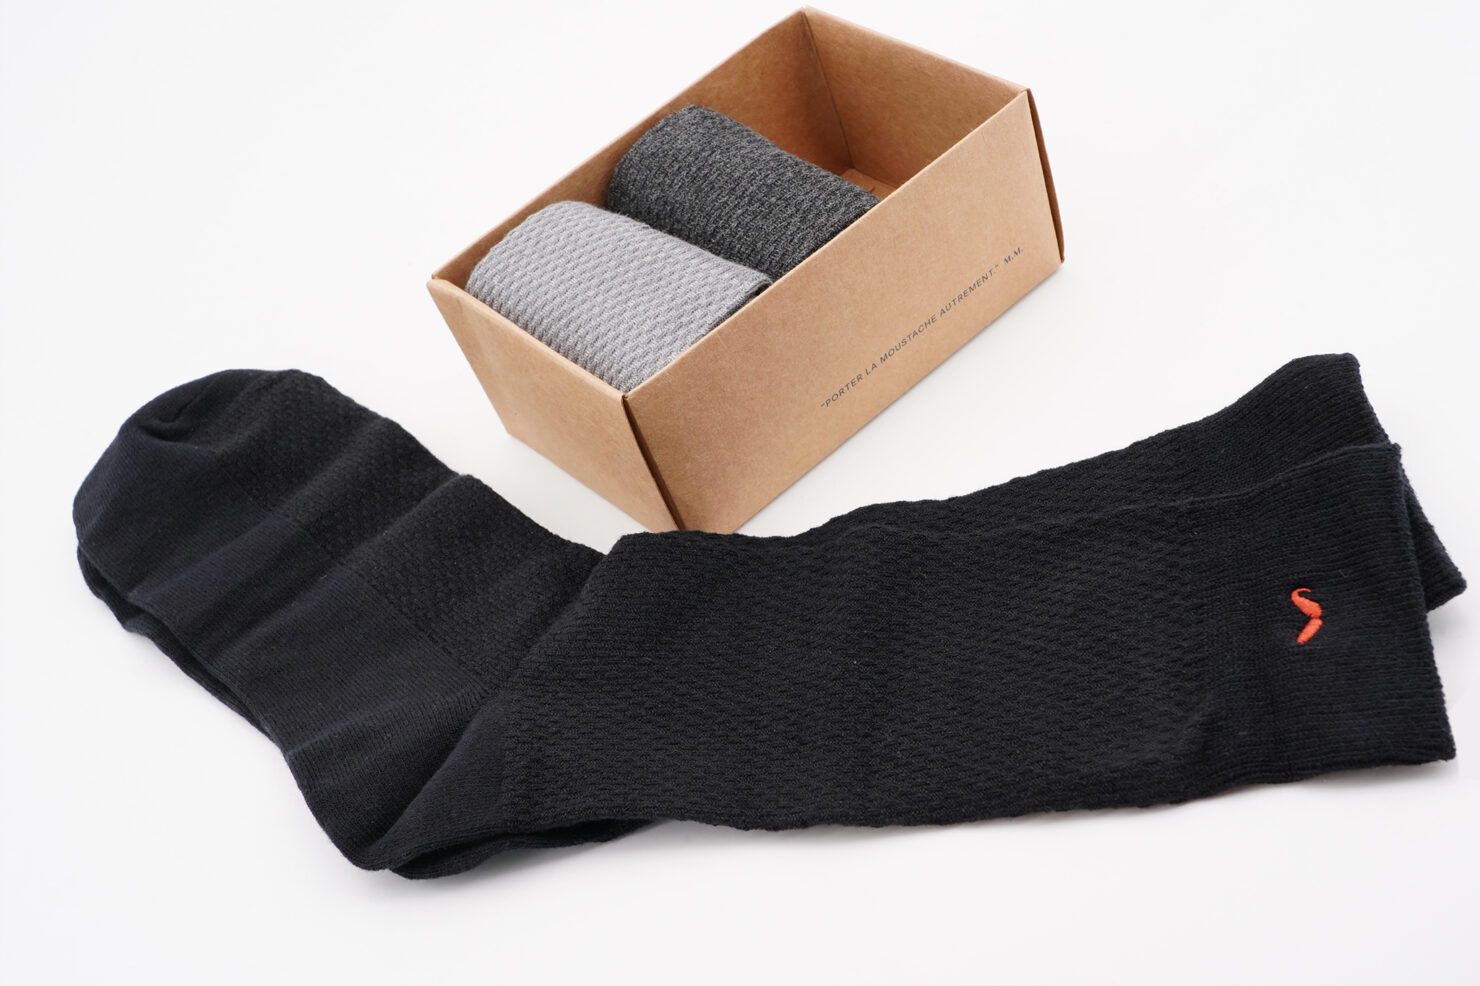 PACK OF 3 SOCKS - EMBOSSED BLACK AND GREY- M. MOUSTACHE